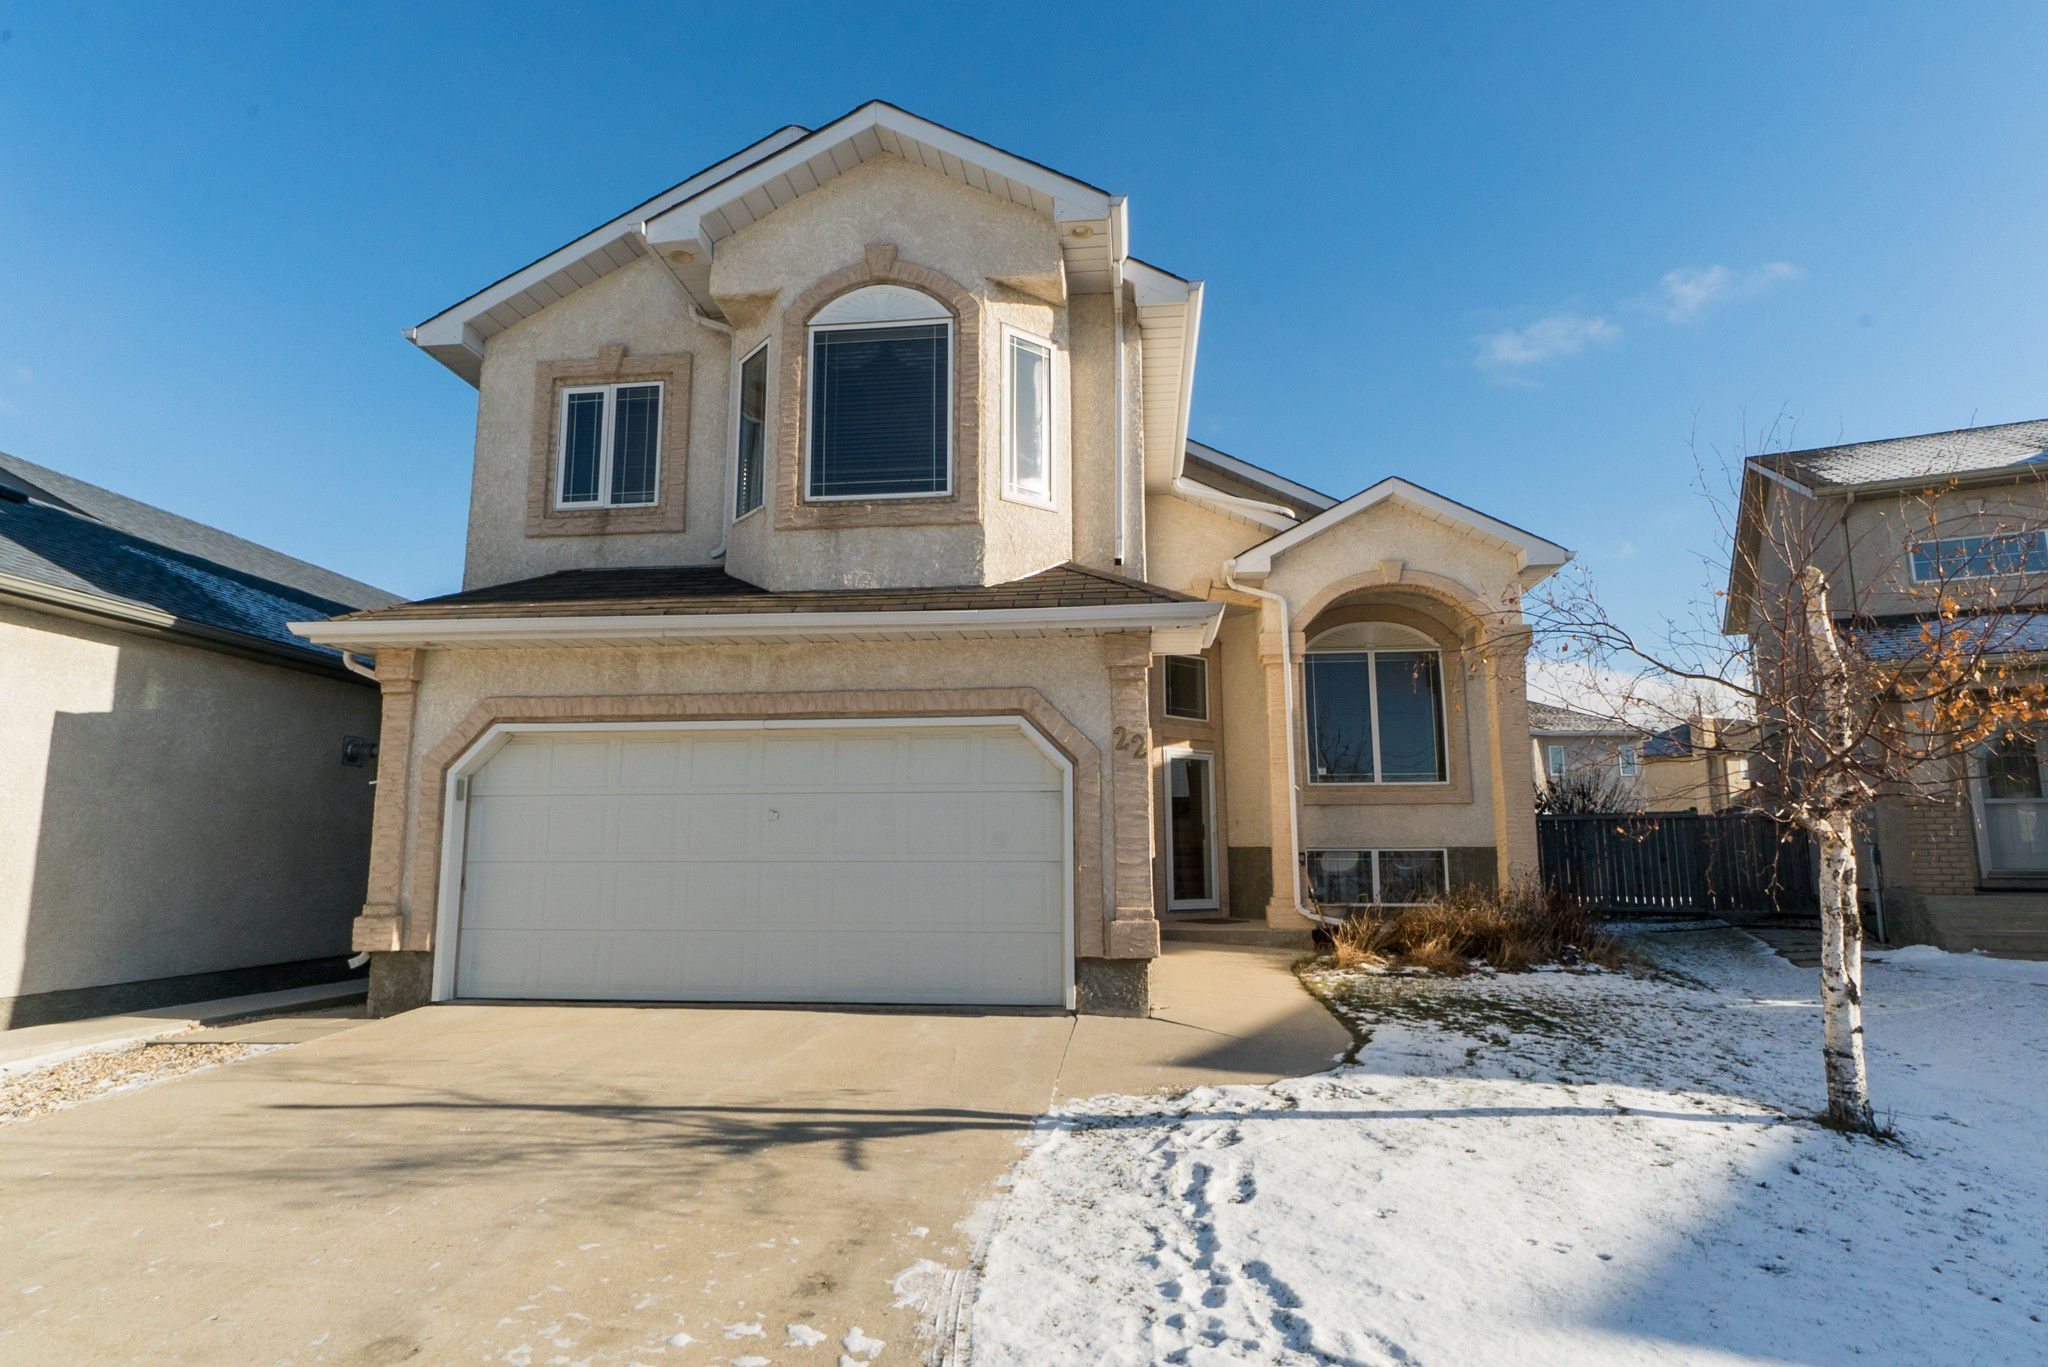 Main Photo: 22 Wingate Court in Winnipeg: Residential for sale (1M)  : MLS®# 1829907